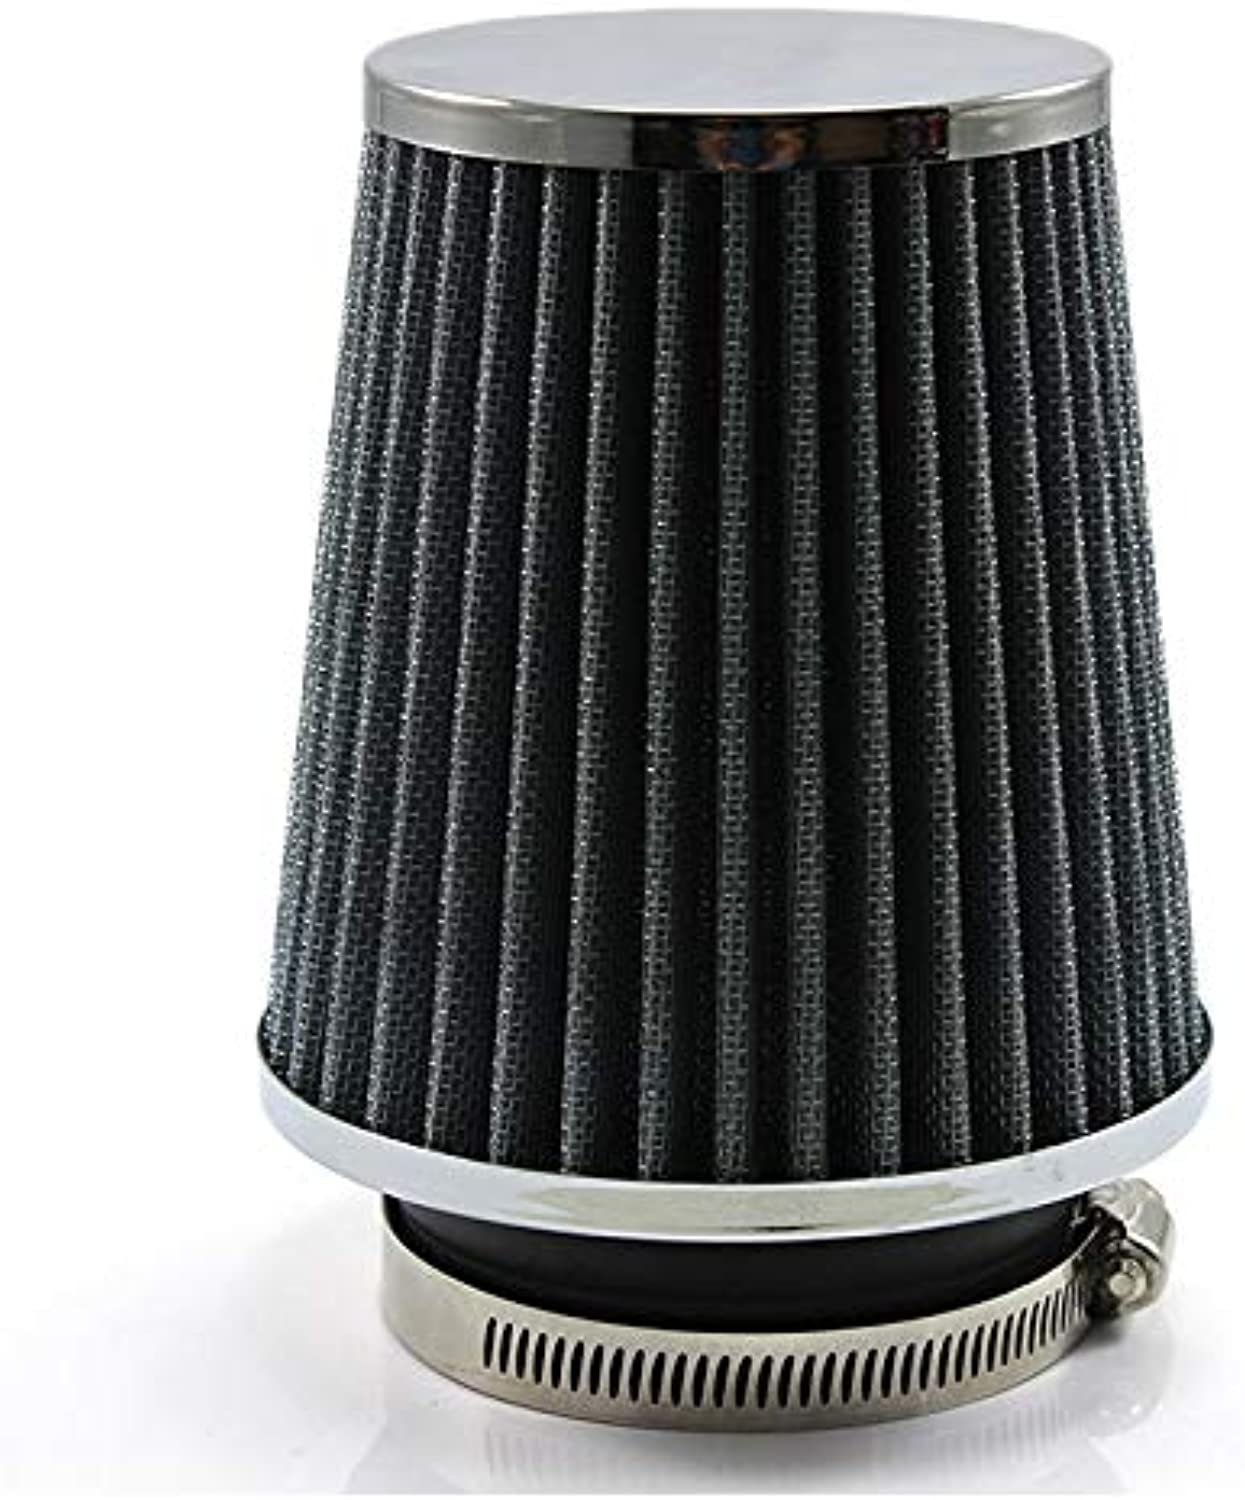 Fincos DOXINGY 76mm Silver Mushroom Head Air Filter Car Universal High Flow Cold Kits car Modification Intake Reuseable Fuel Economy